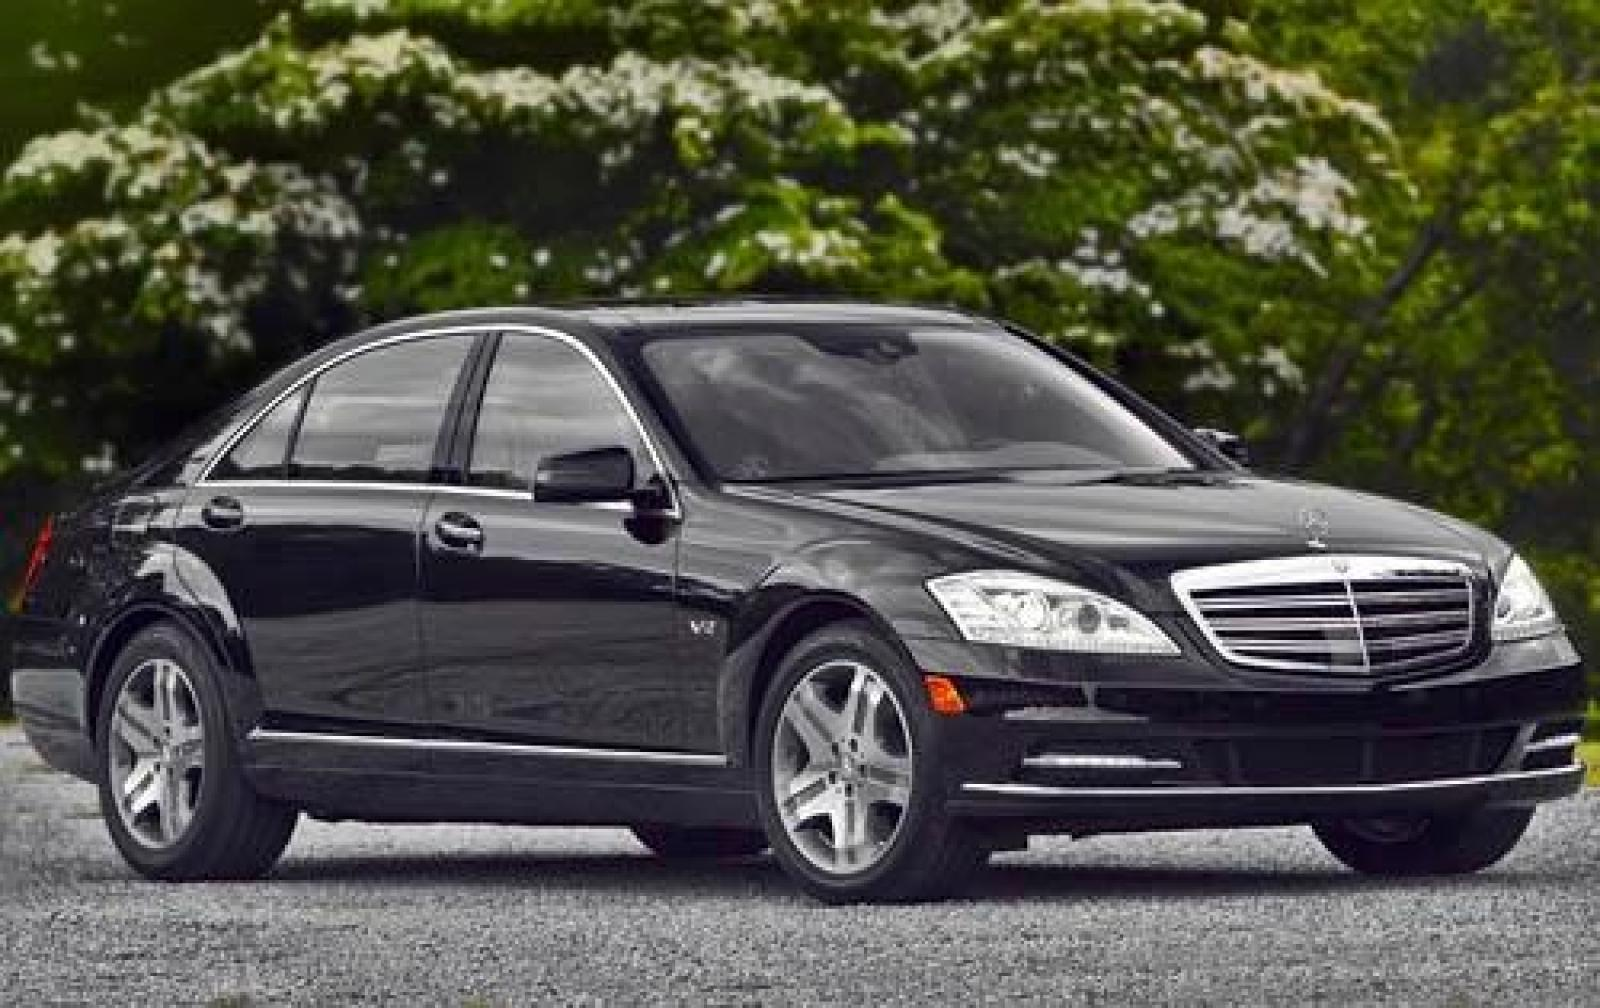 2010 mercedes benz s class information and photos zombiedrive. Black Bedroom Furniture Sets. Home Design Ideas